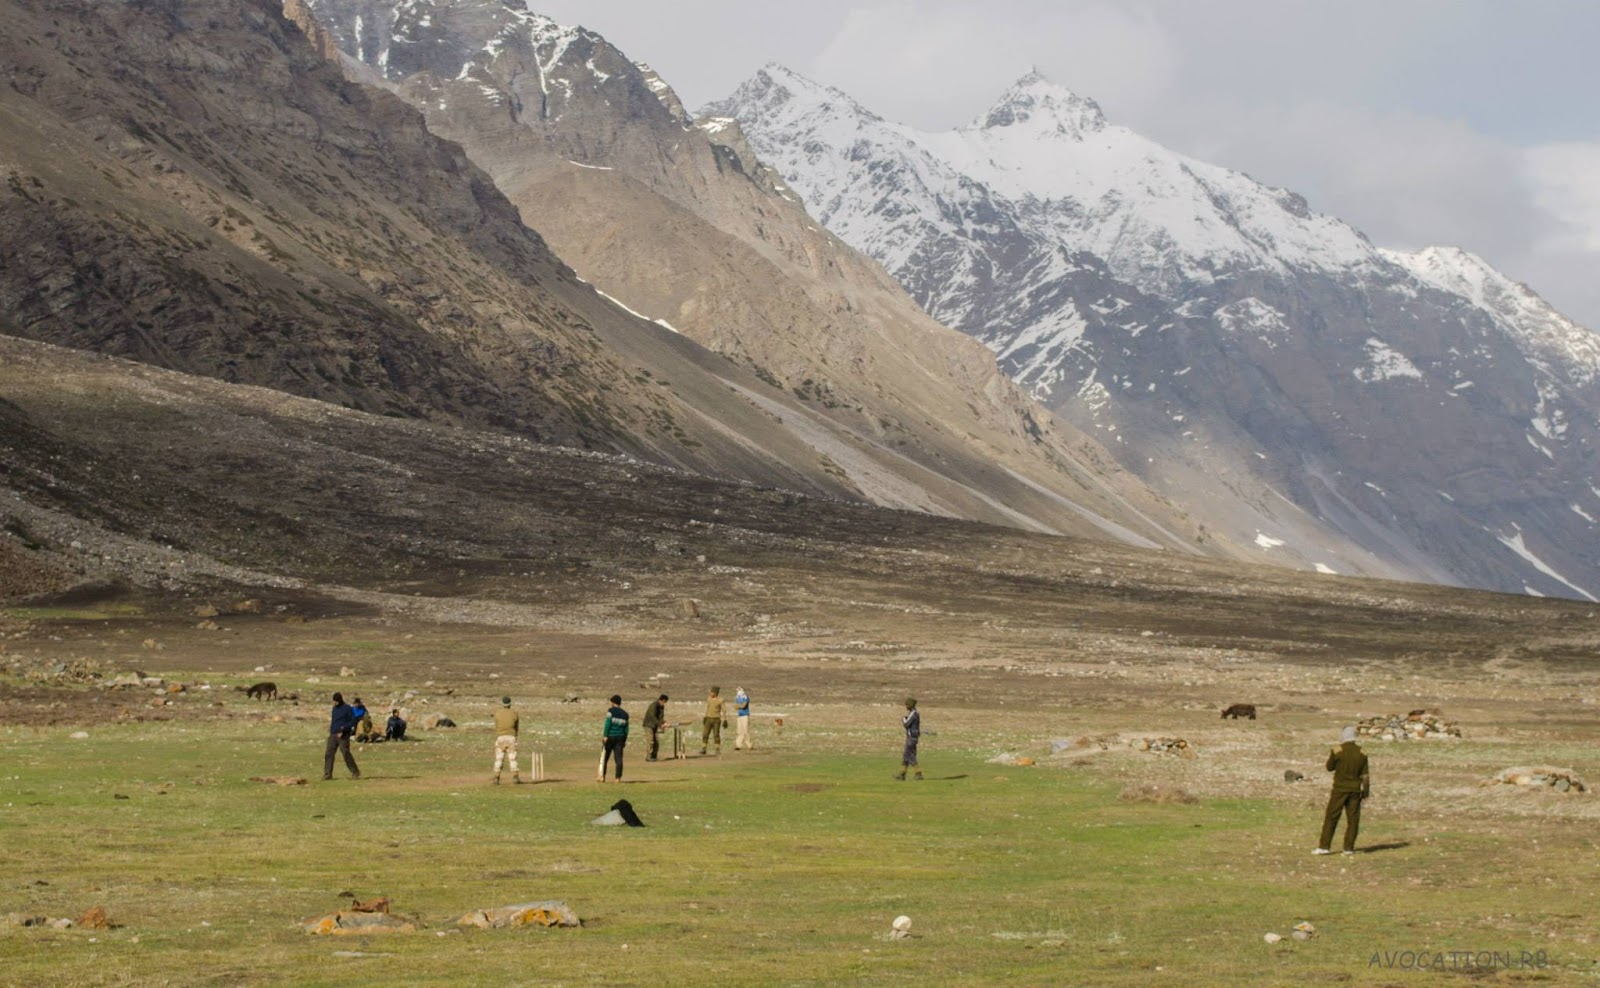 Playing cricket at an altitude of 4200 meters , Dumti ITBP camp